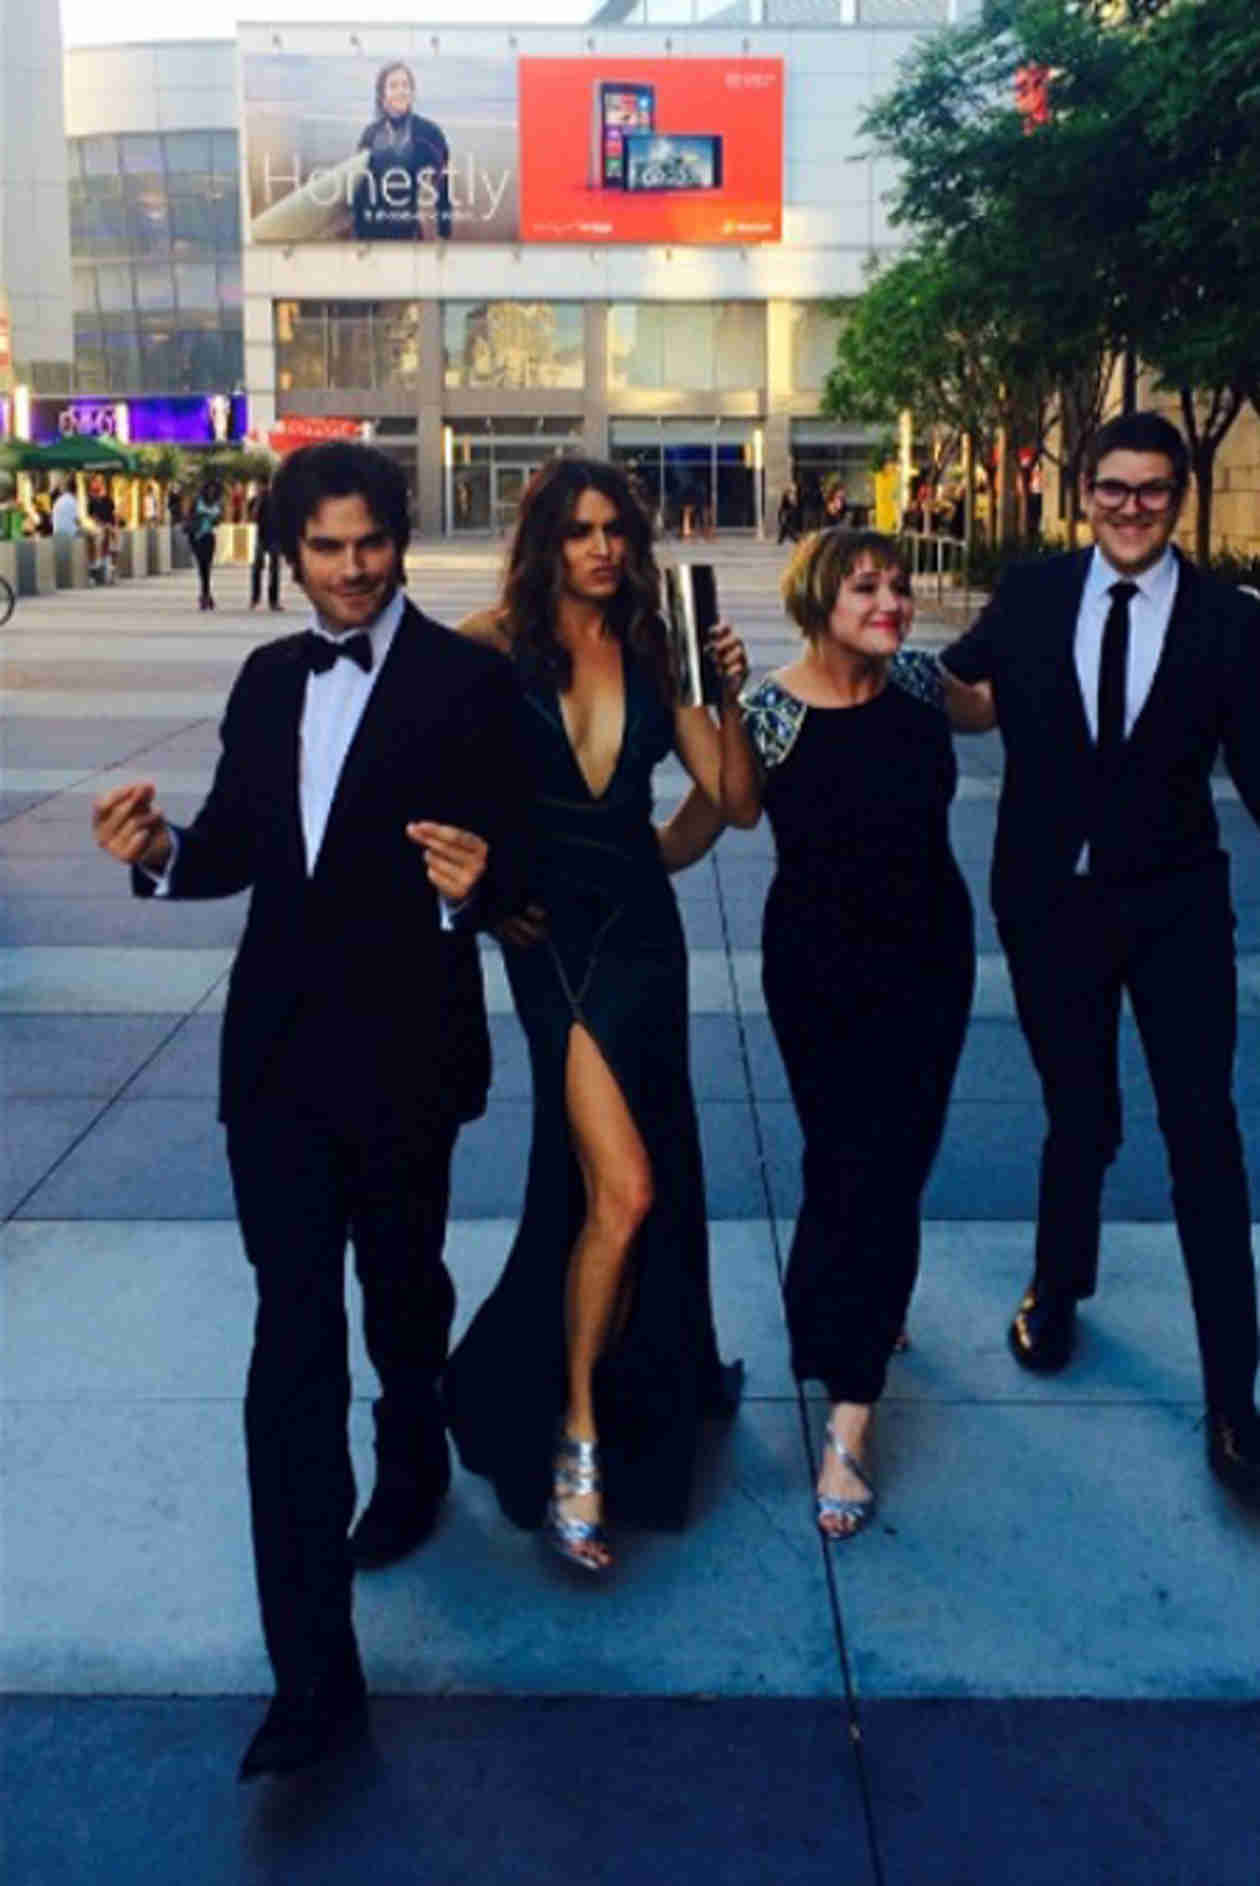 Ian Somerhalder Celebrates Emmy Win With Girlfriend Nikki Reed (VIDEO)